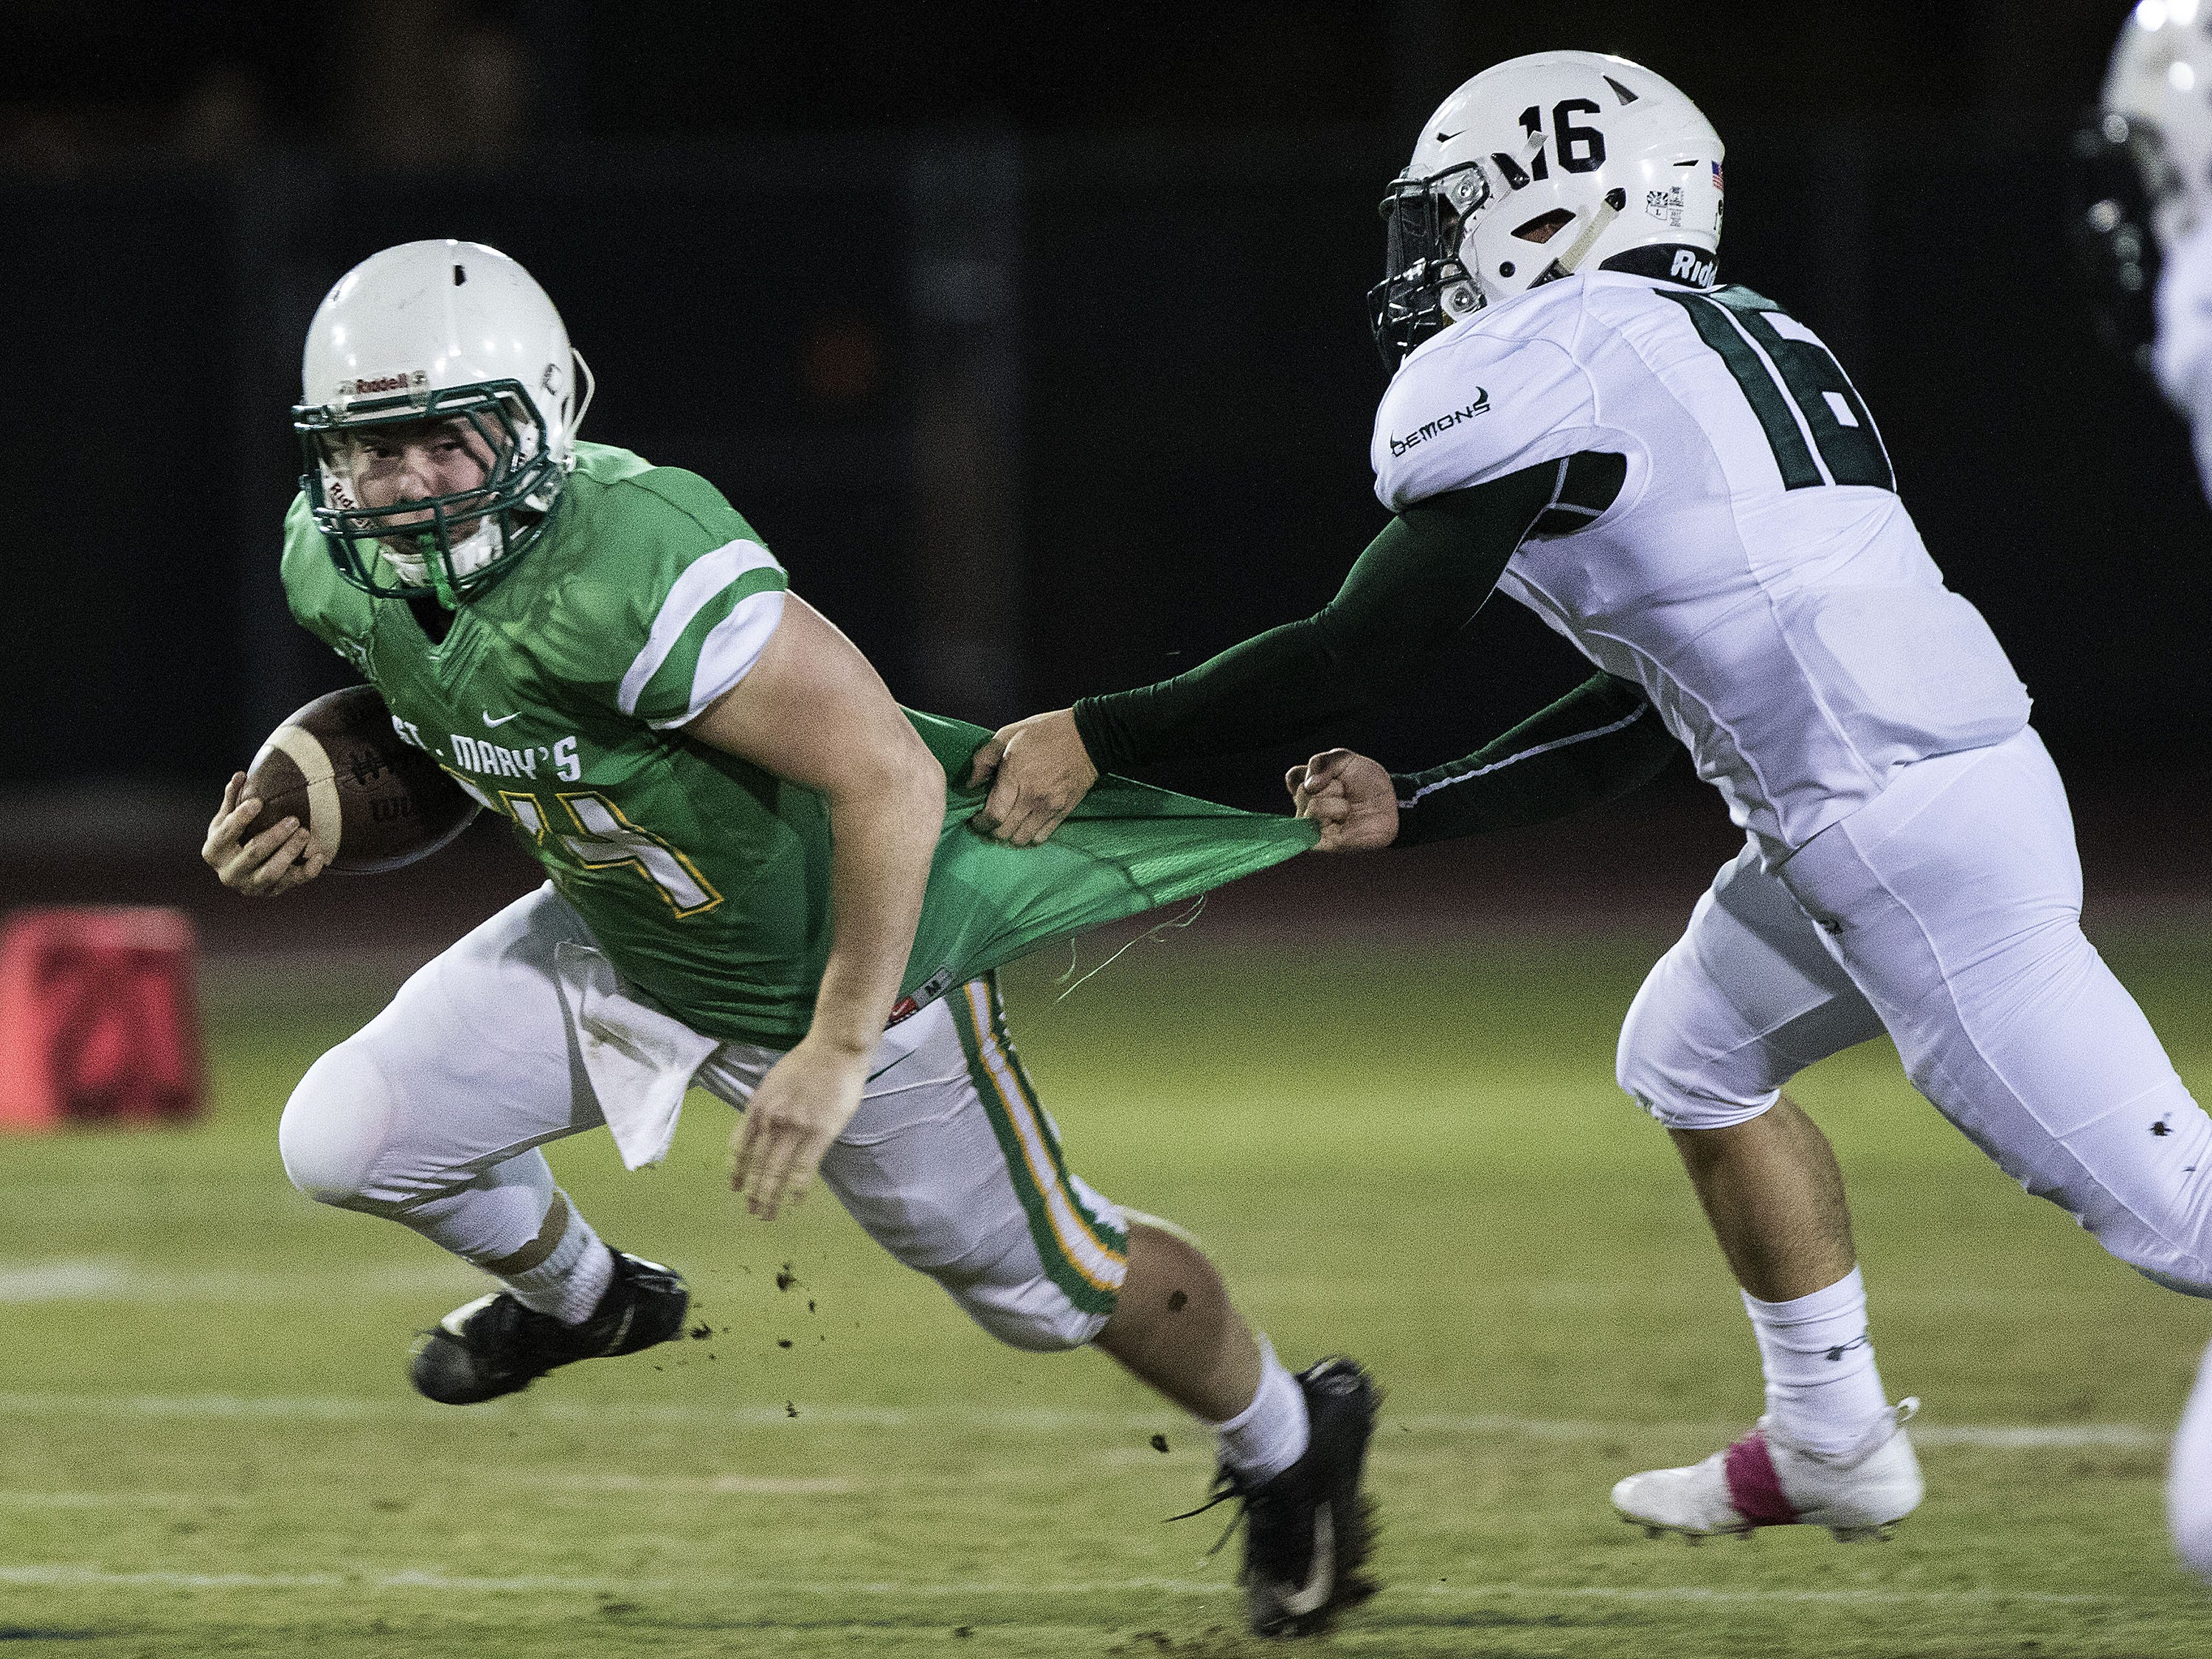 St. Mary's Jack Flanagan has his jersey pulled as Greenway's Jace Creed makes a tackle during their game at Phoenix College in Phoenix Friday, Oct. 12, 2018. #azhsfb